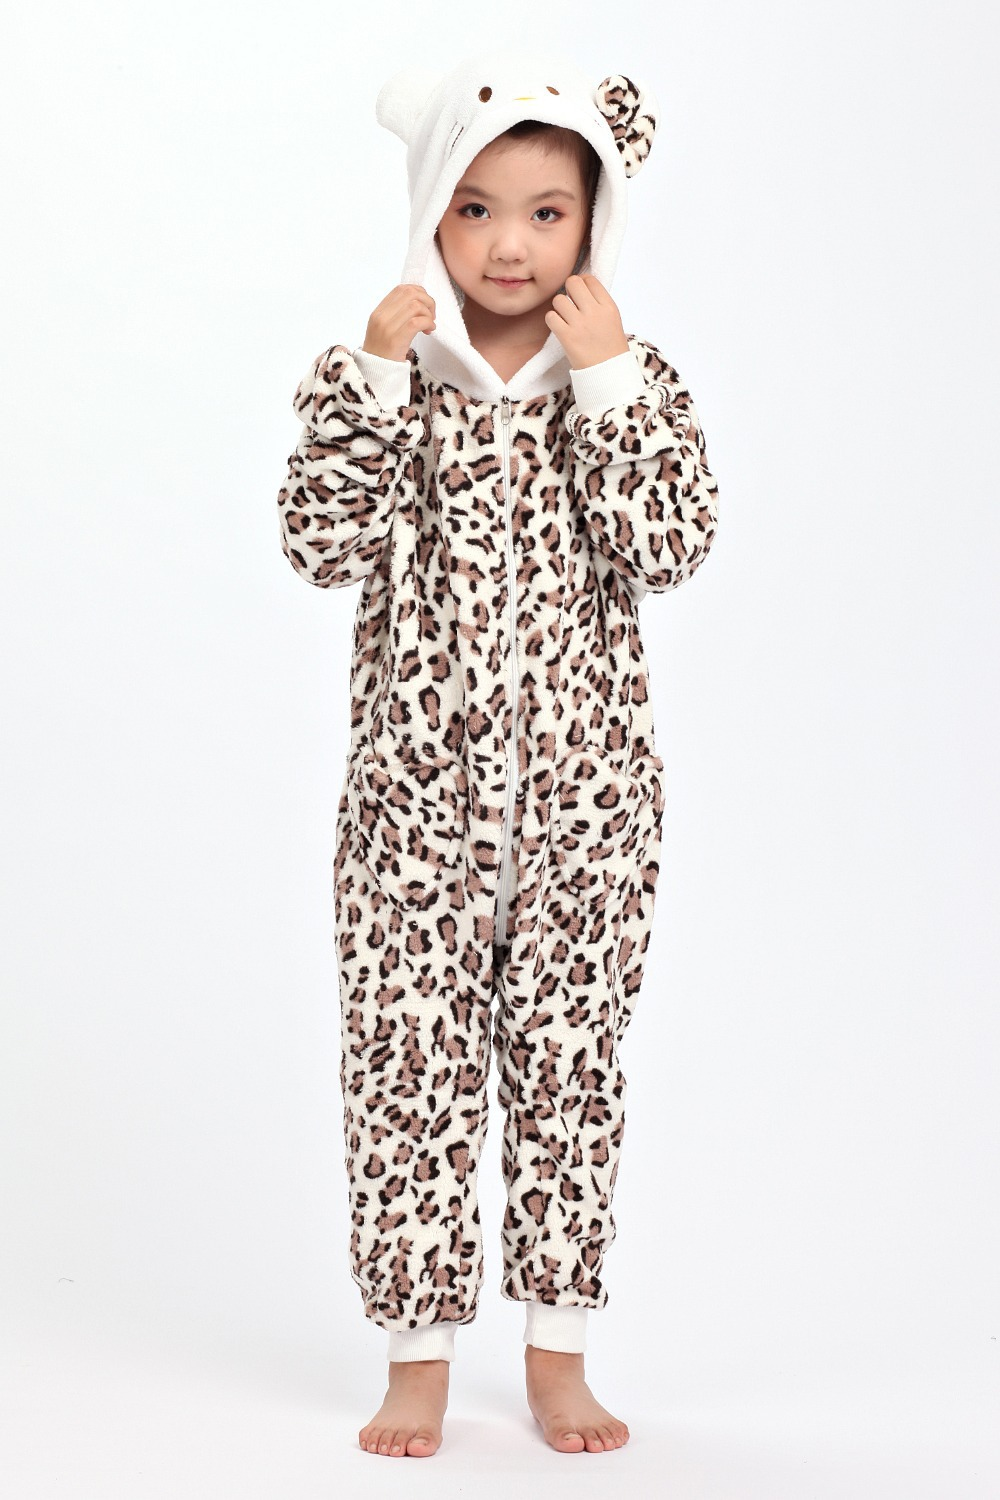 All our kids onesies are currently on sale!